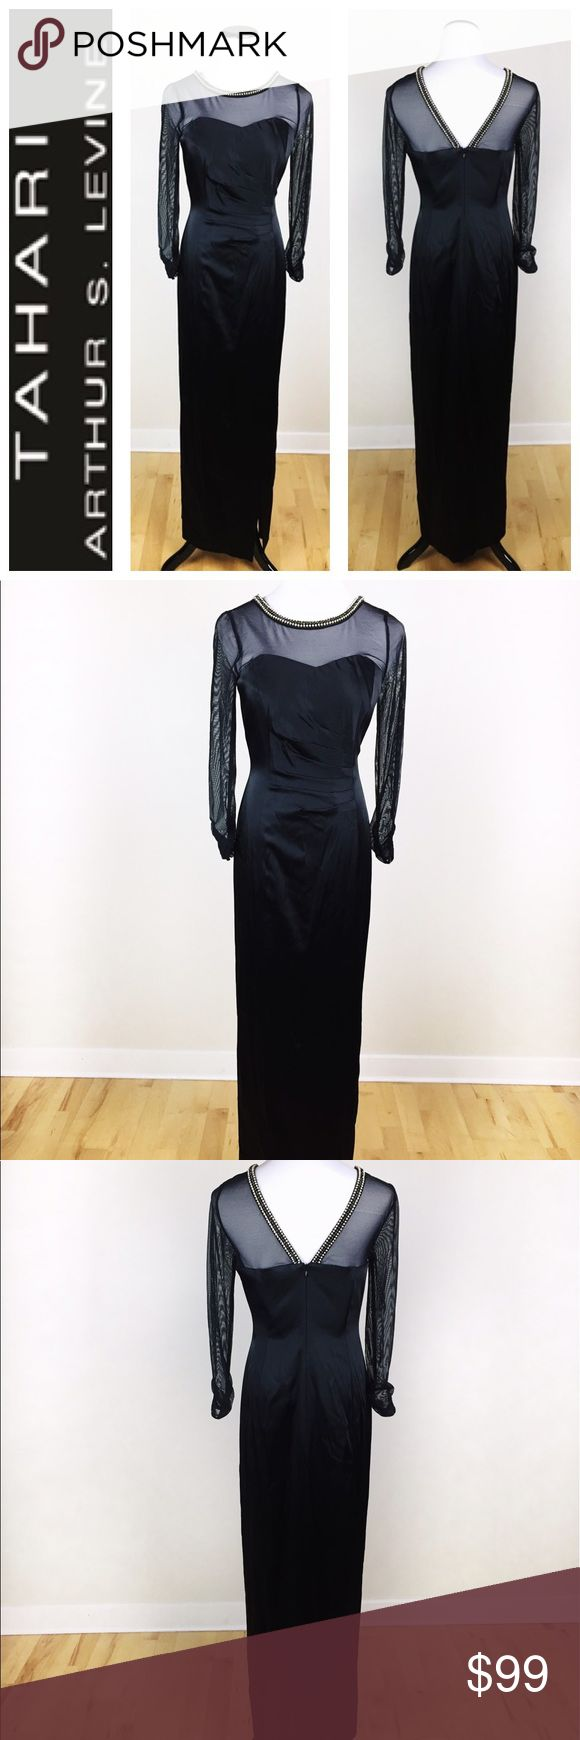 TAHARI ARTHUR LEVINE BLACK GOWN SIZE 8 Stunning Tahari by Arthur Levine black gown in size 8. With gorgeous rhinestones surrounding the neck area and mesh sleeves! Absolutely gorgeous with an old Hollywood glamour flair! Very body flattering. New without tags, never worn, been in a closet. No flaws. Love it? Make an offer! Questions? Ask me 😉 Tahari Dresses